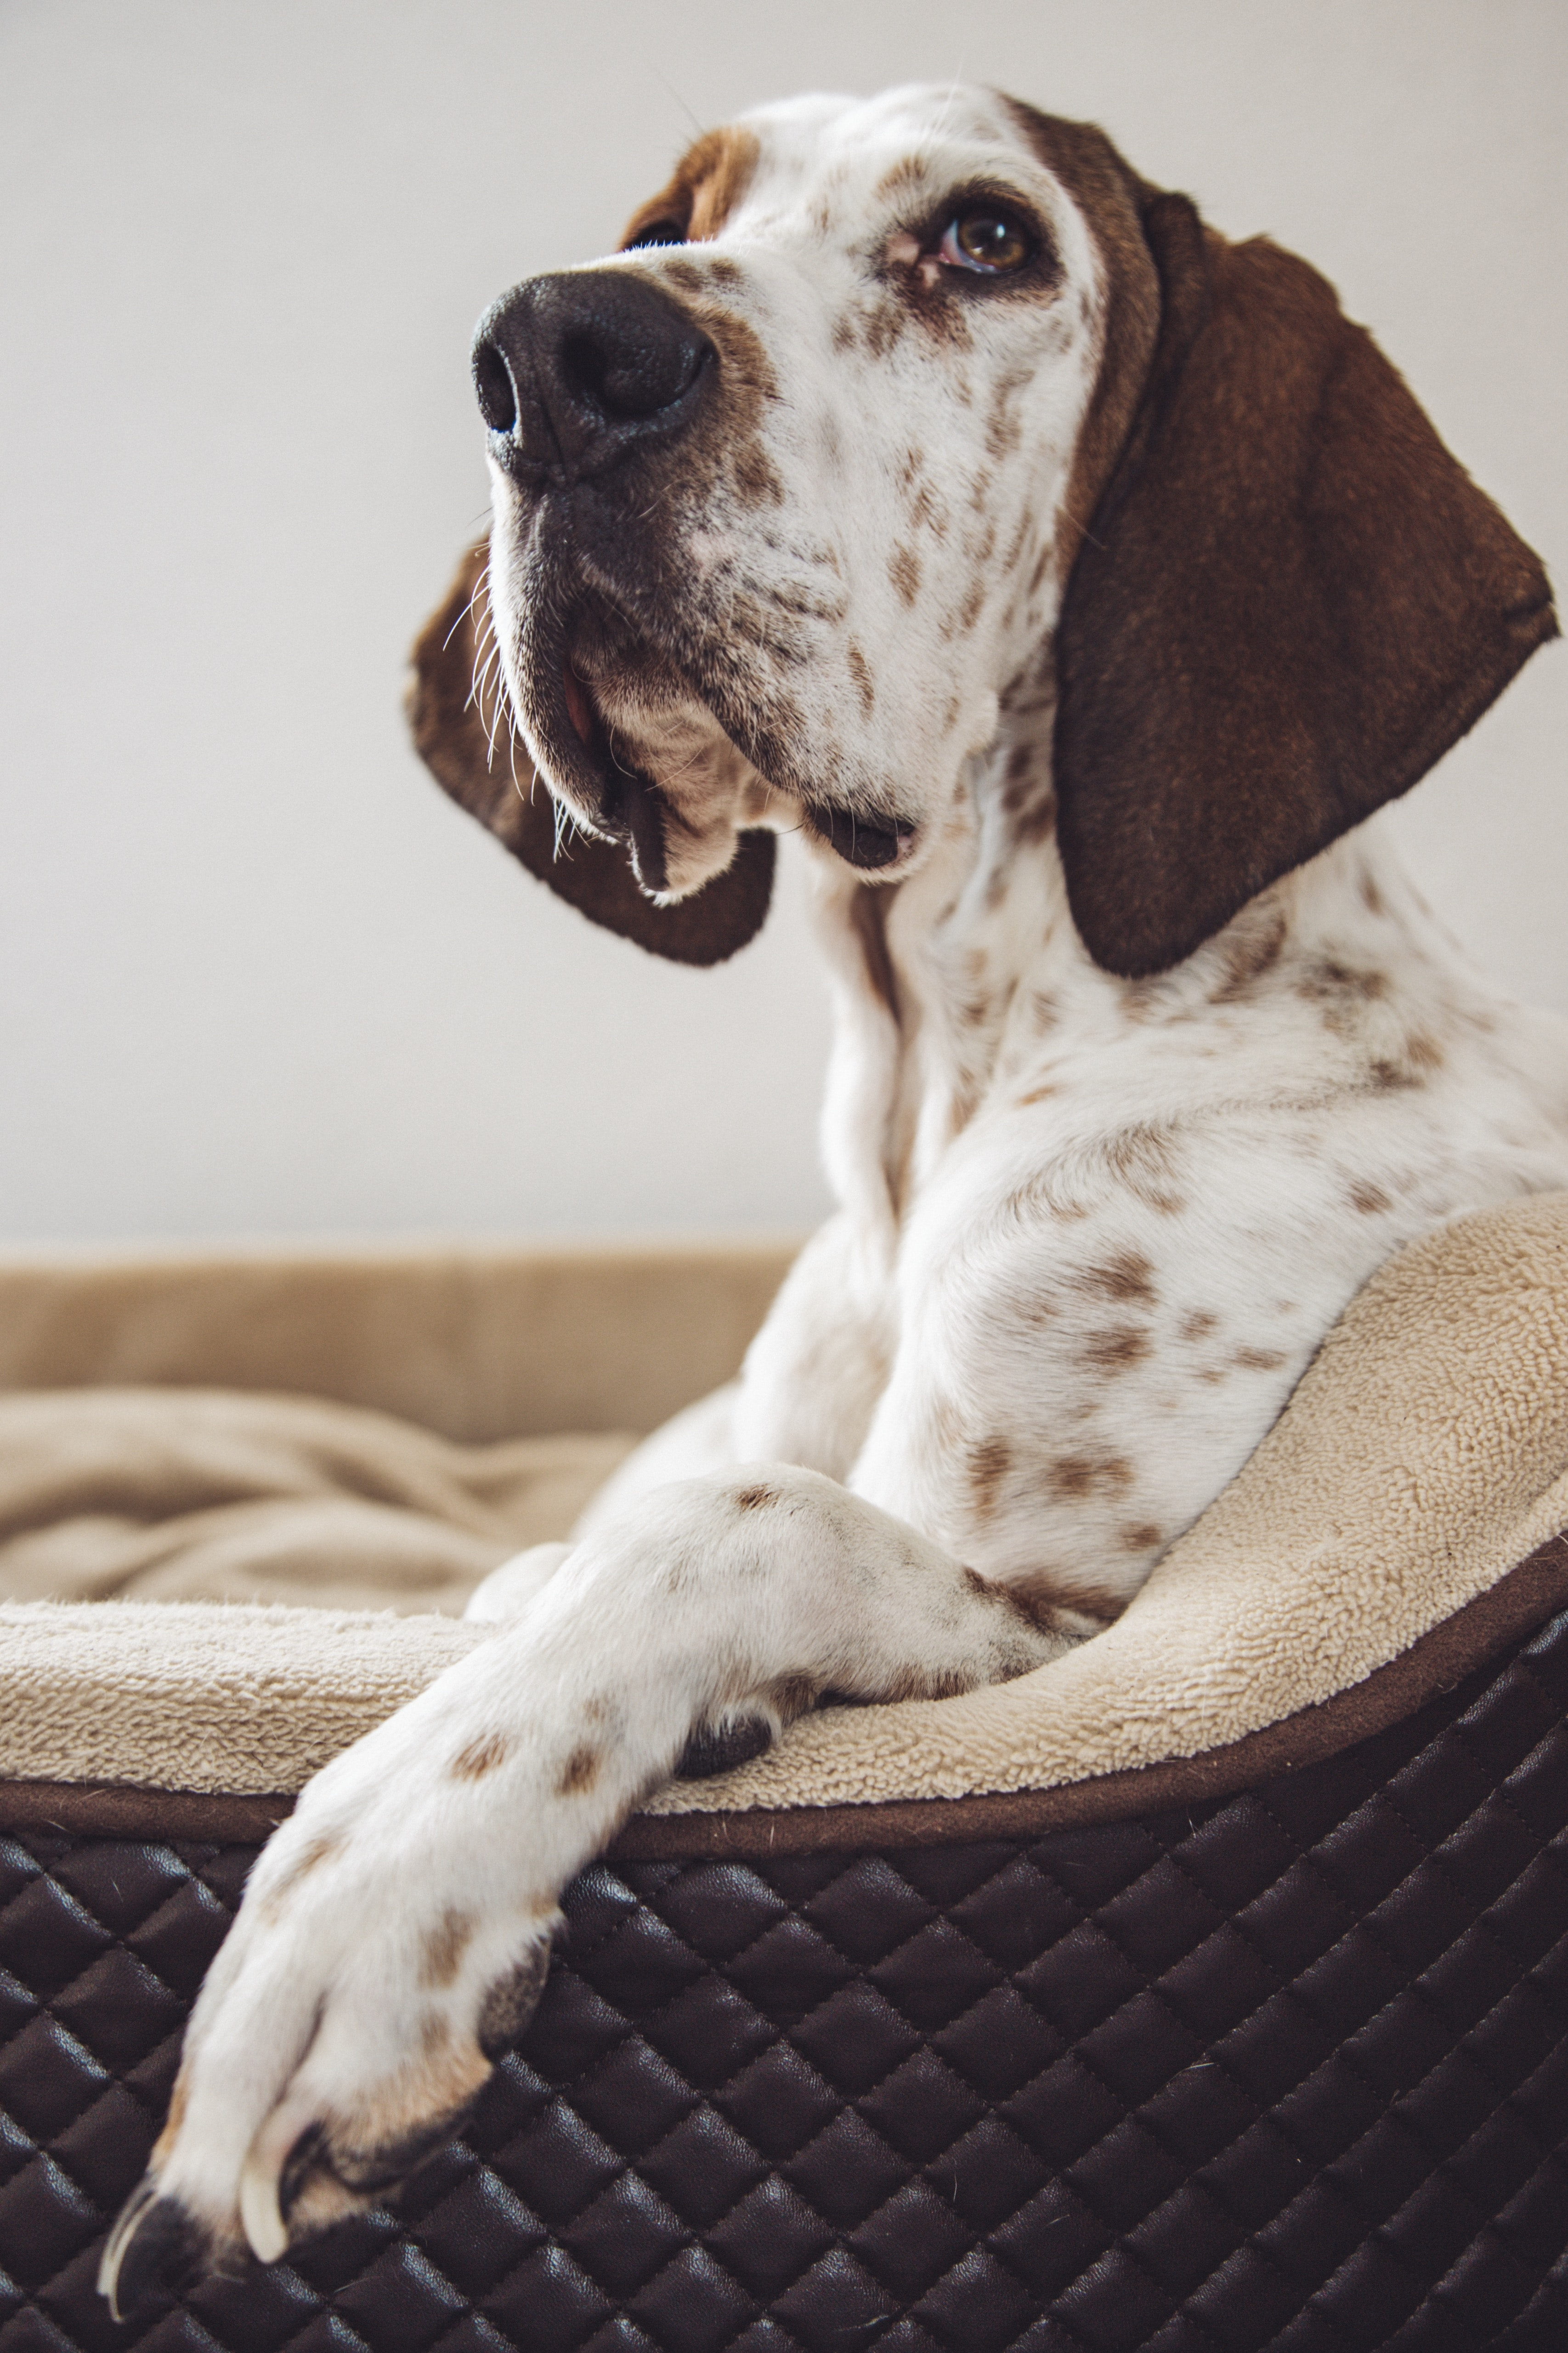 white and brown dog sitting on gray and black couch